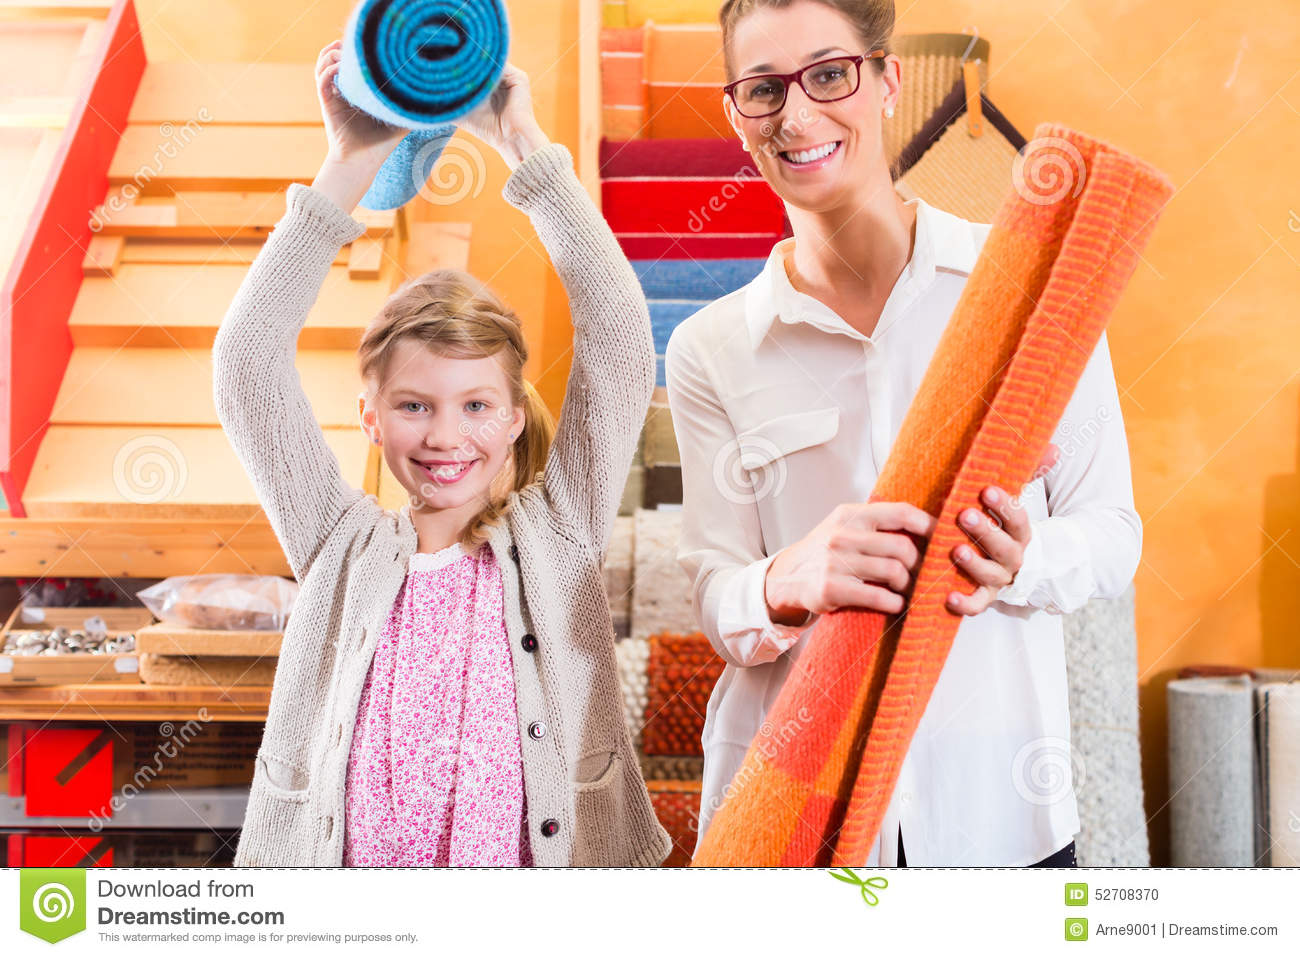 Family designer buying rug or carpeting stock photo for How to buy carpeting